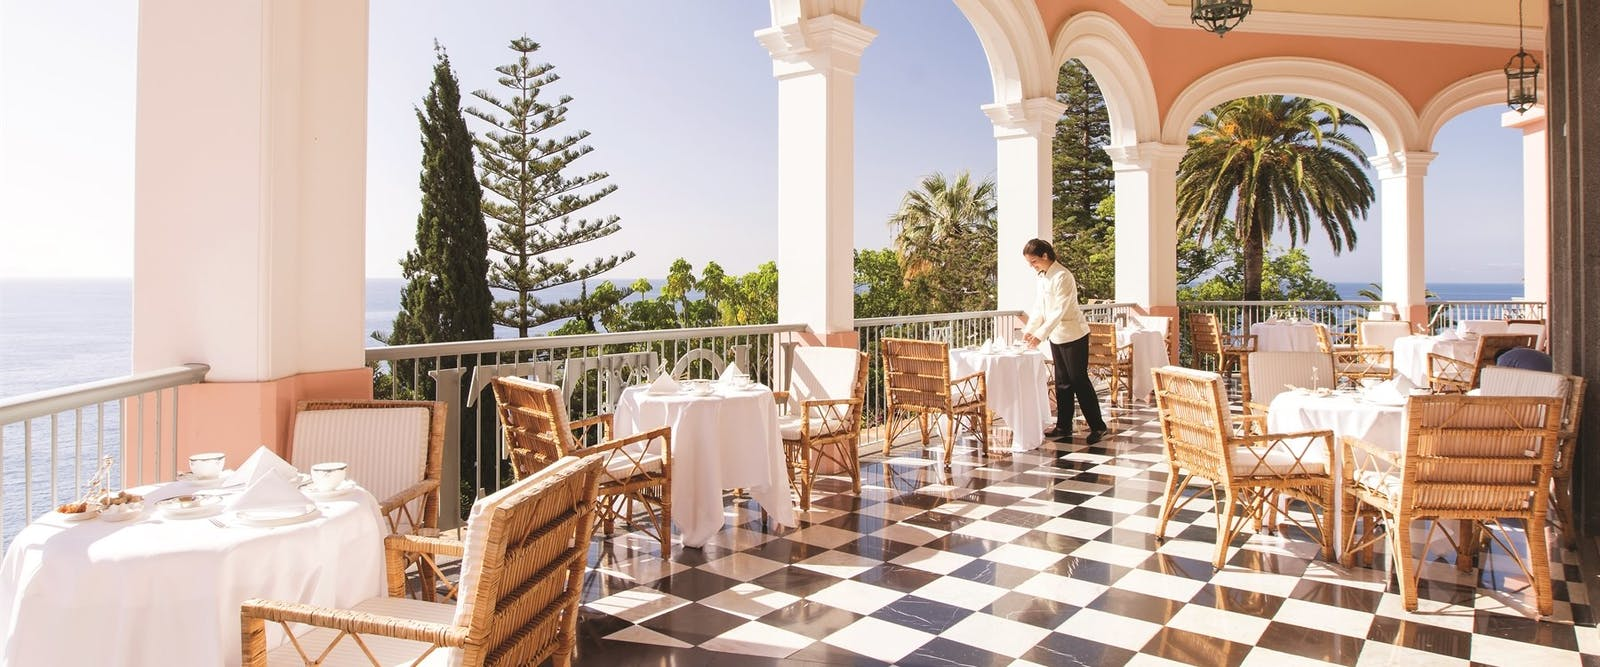 Afternoon Tea at Belmond Reids Palace, Madeira, Portugal